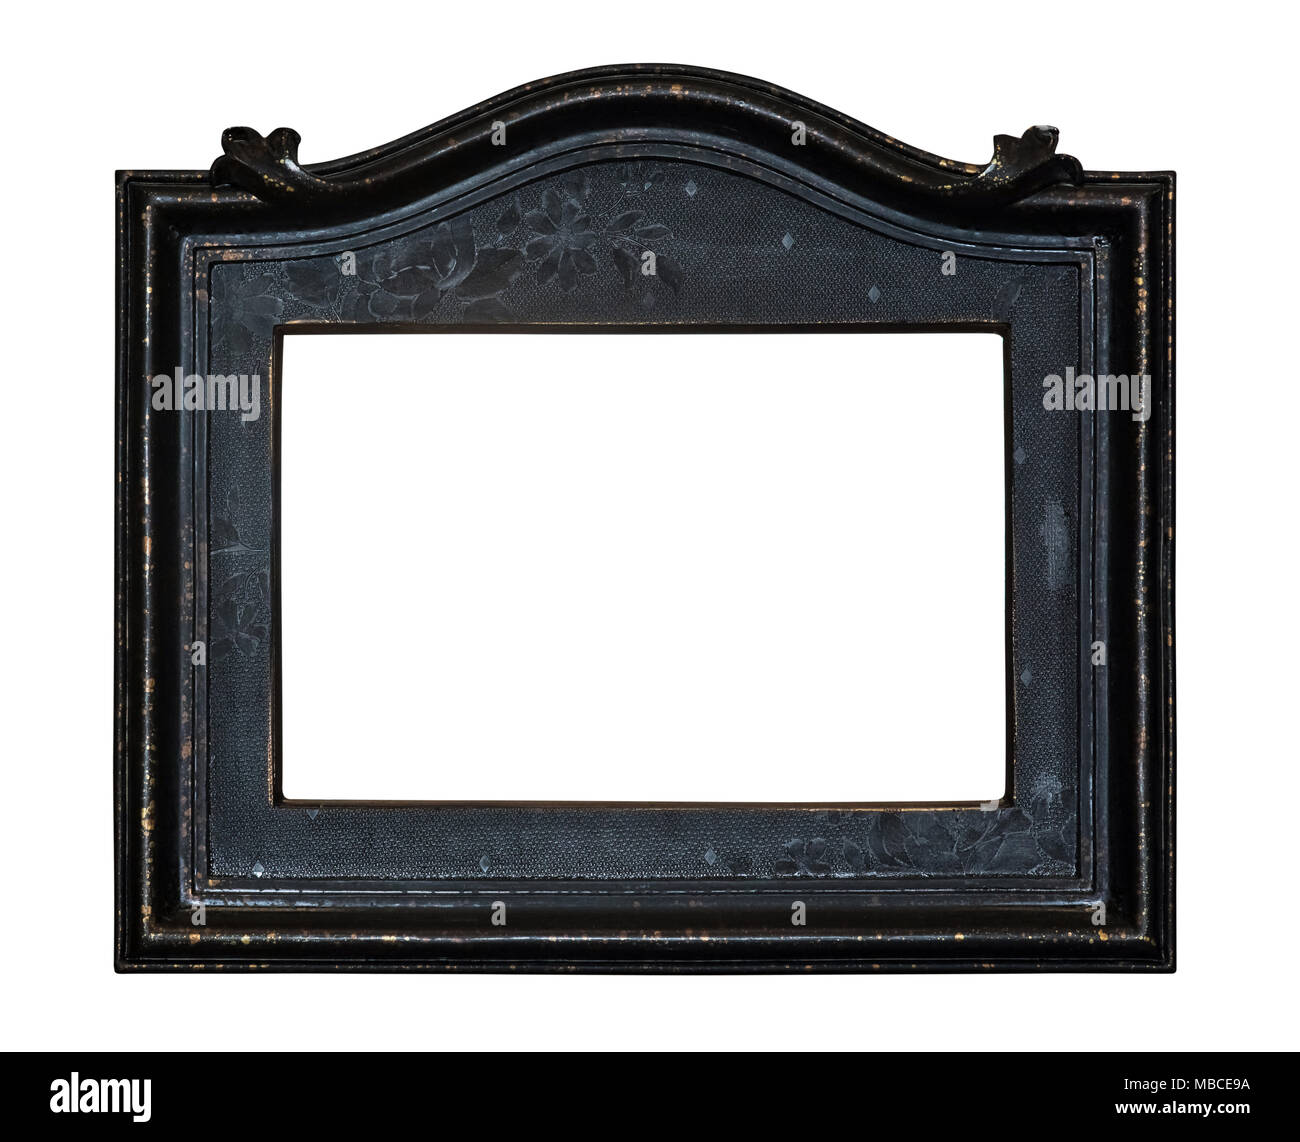 Black vintage photo frame isolated - Stock Image